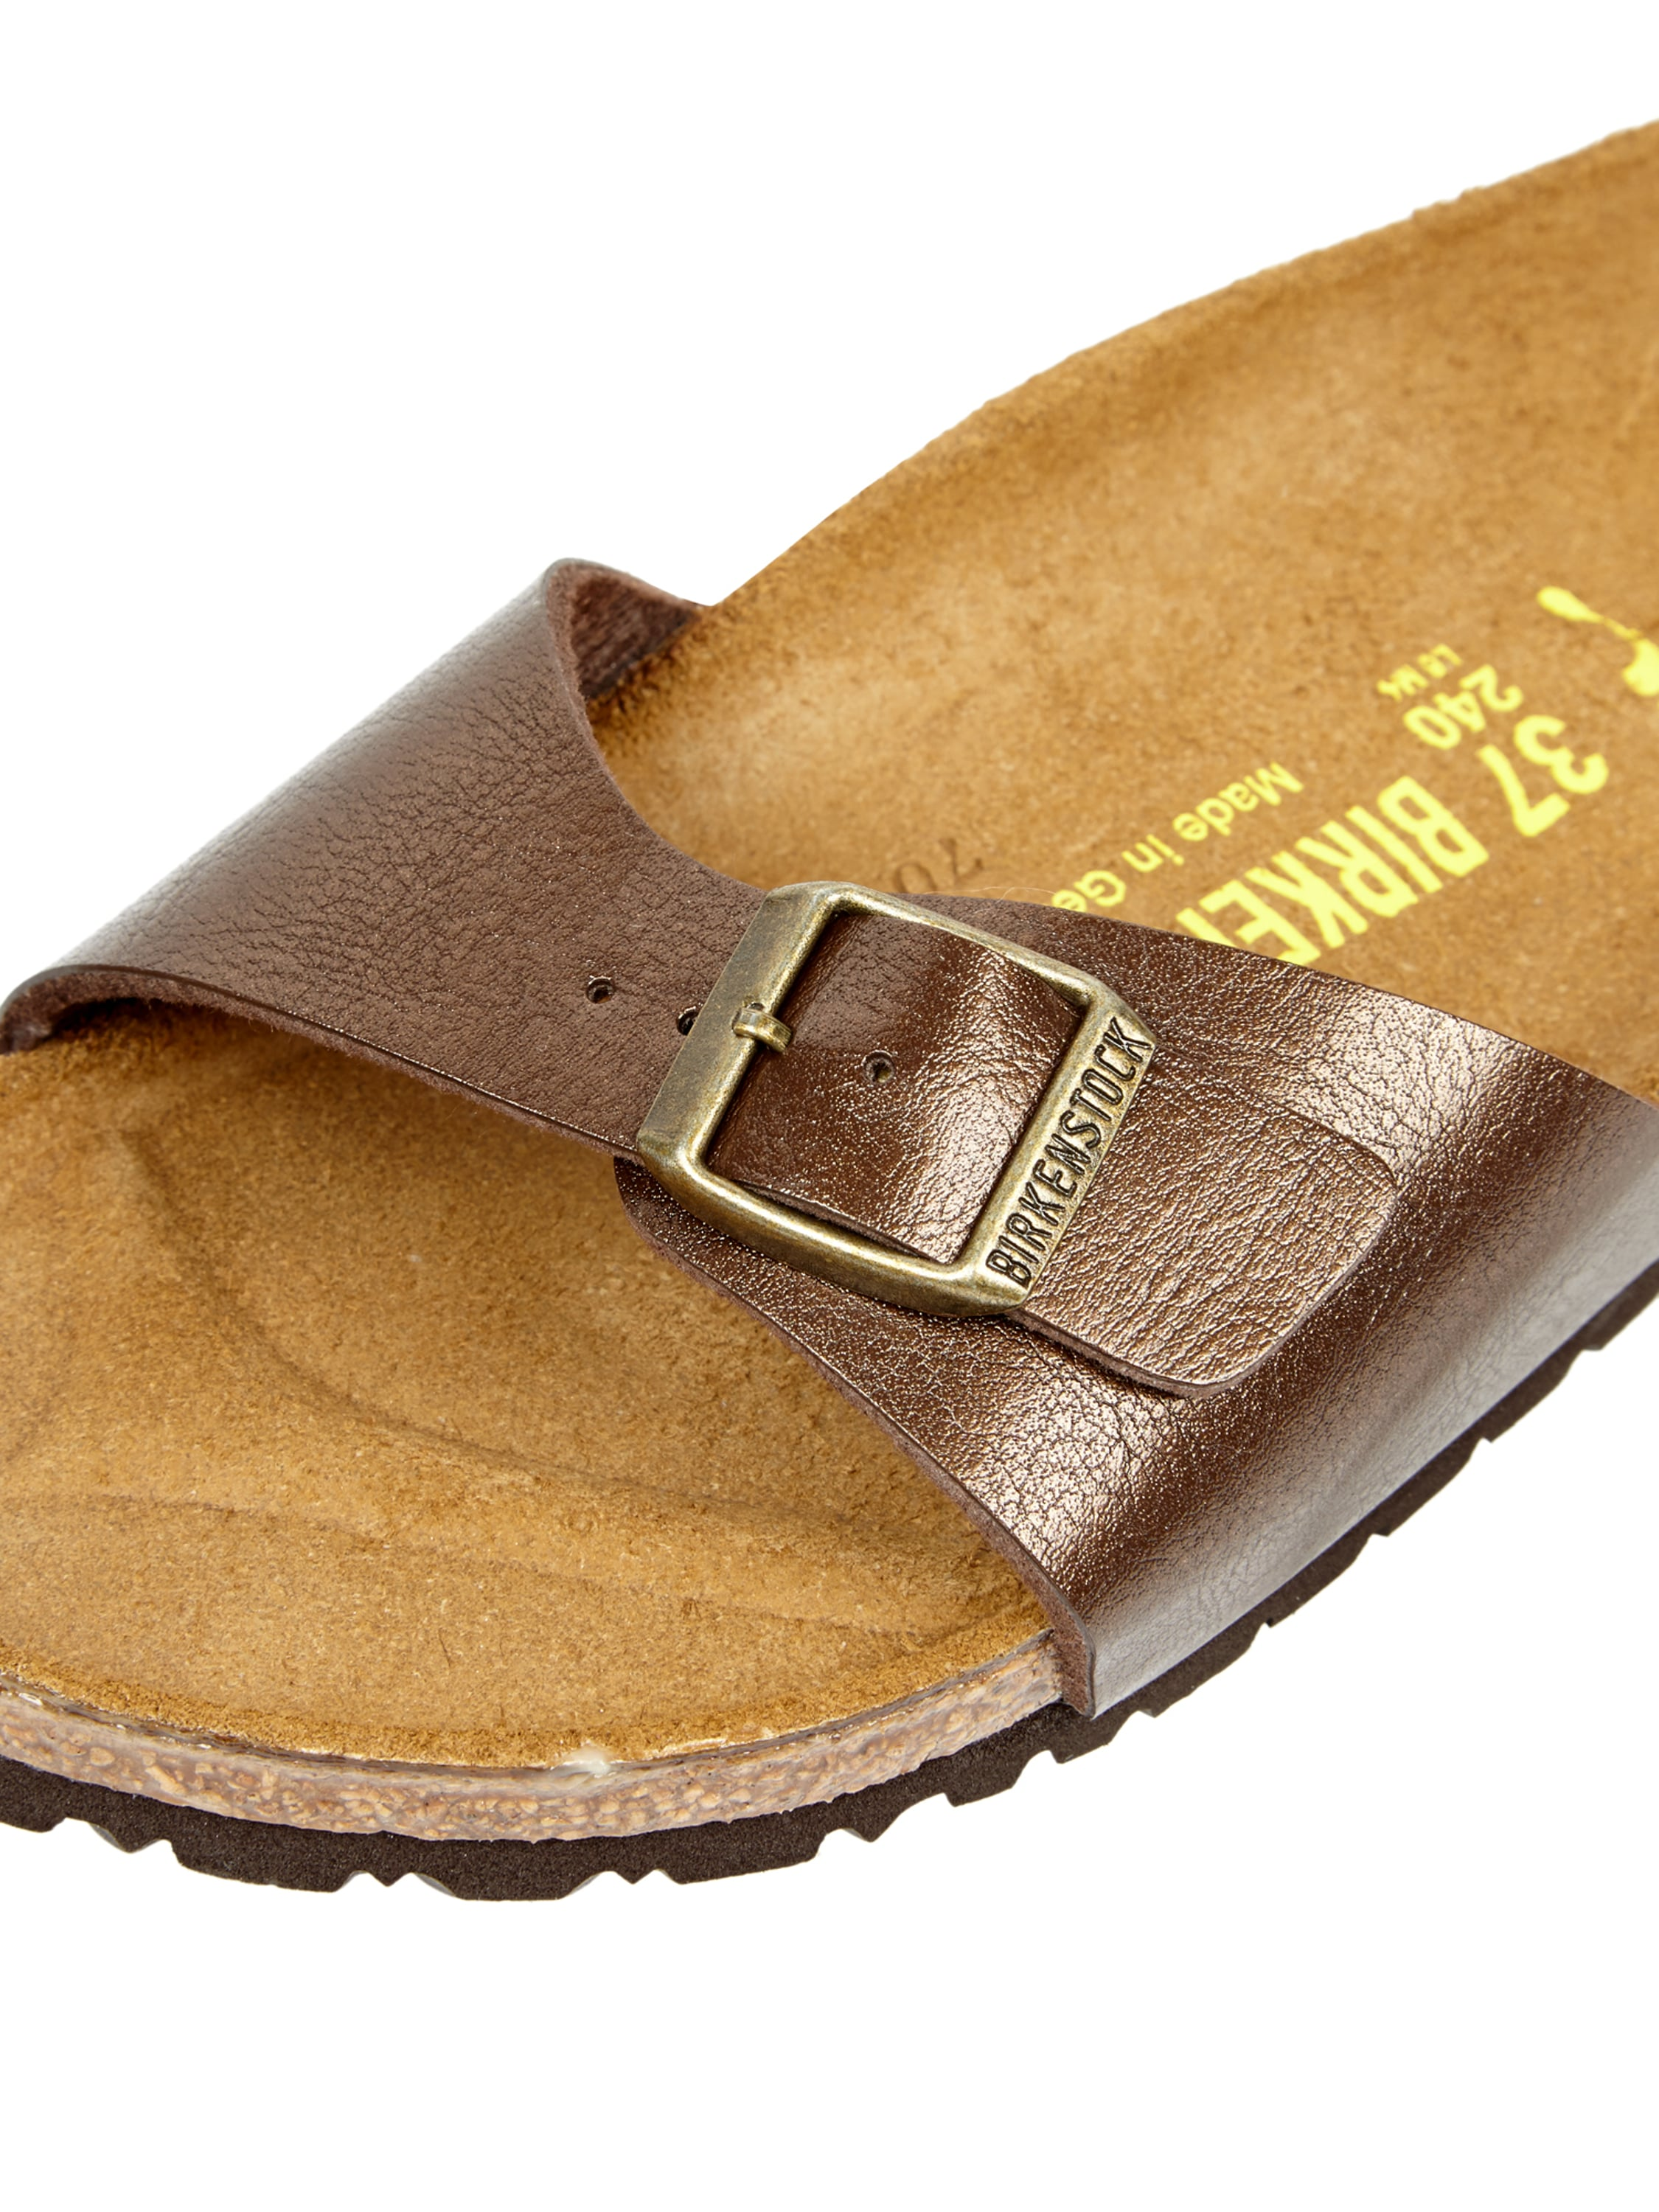 30e75838cca5 BIRKENSTOCK Men s ShoesCasual Shoes To Modern SneakersGreat Comfort With  Every Step!